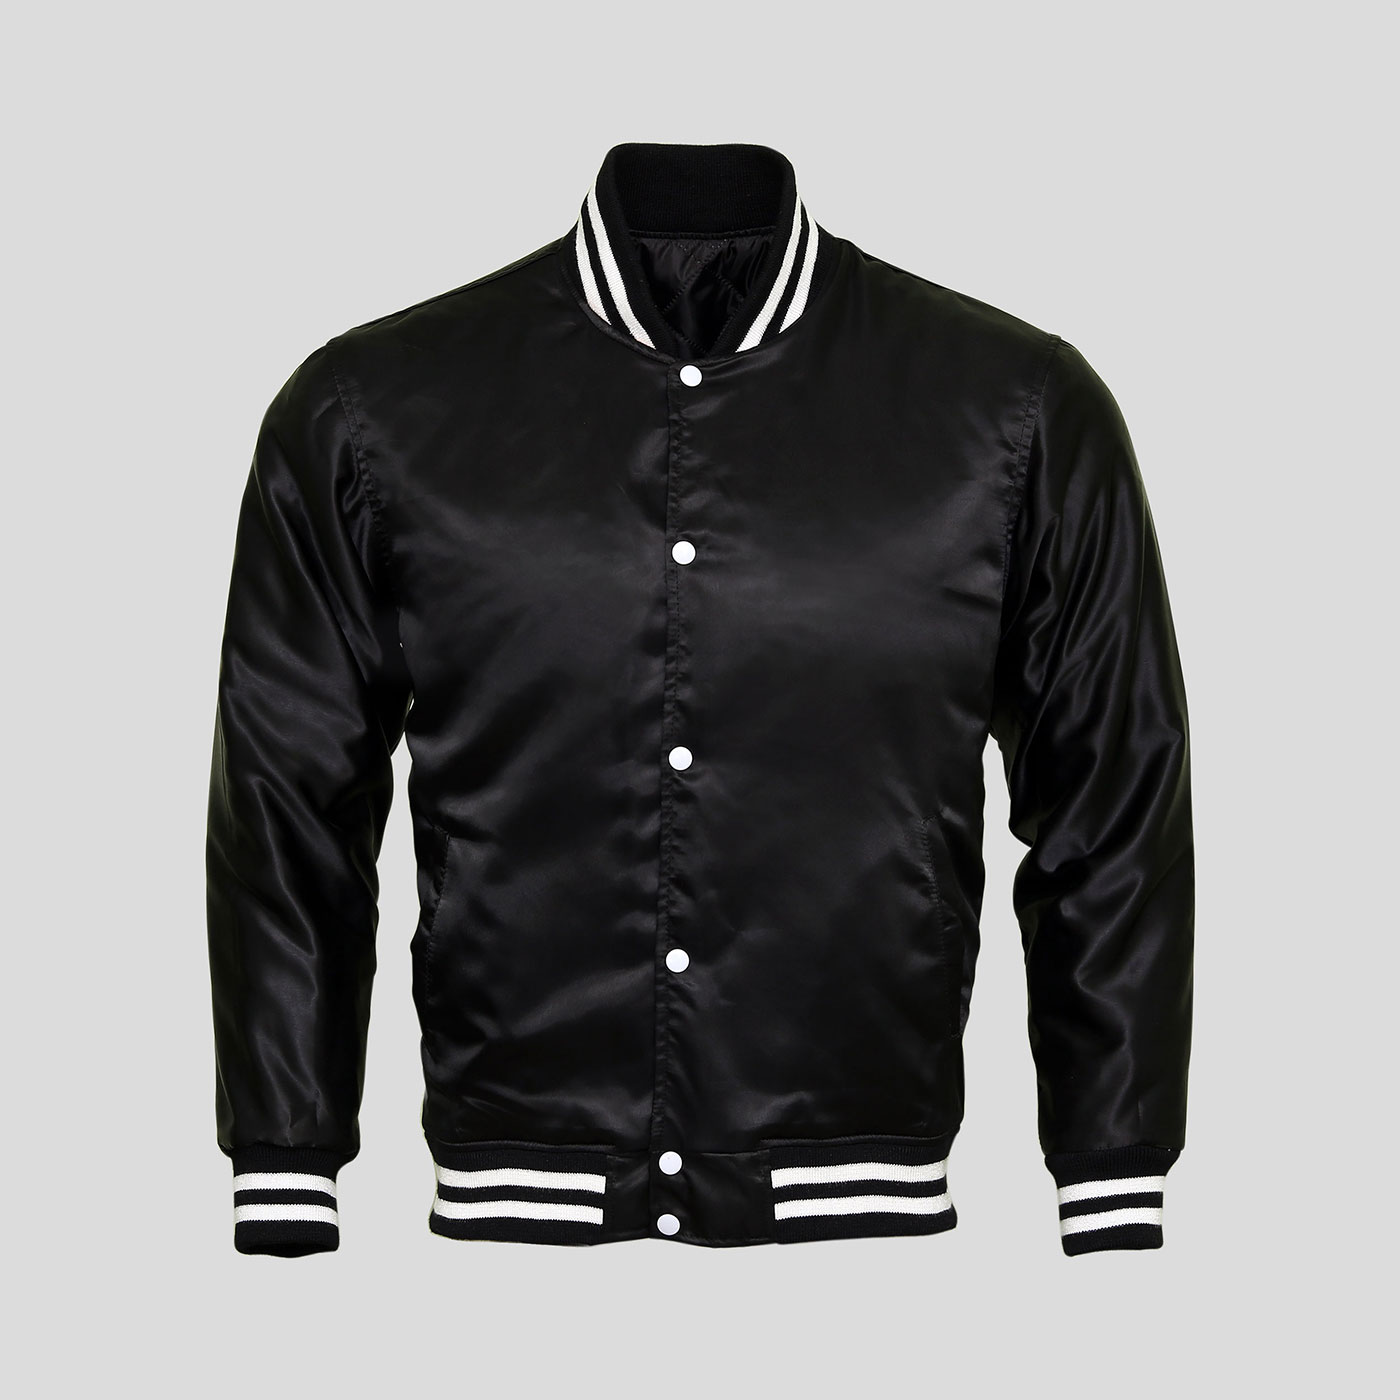 Black Satin Baseball Jacket | Clothoo